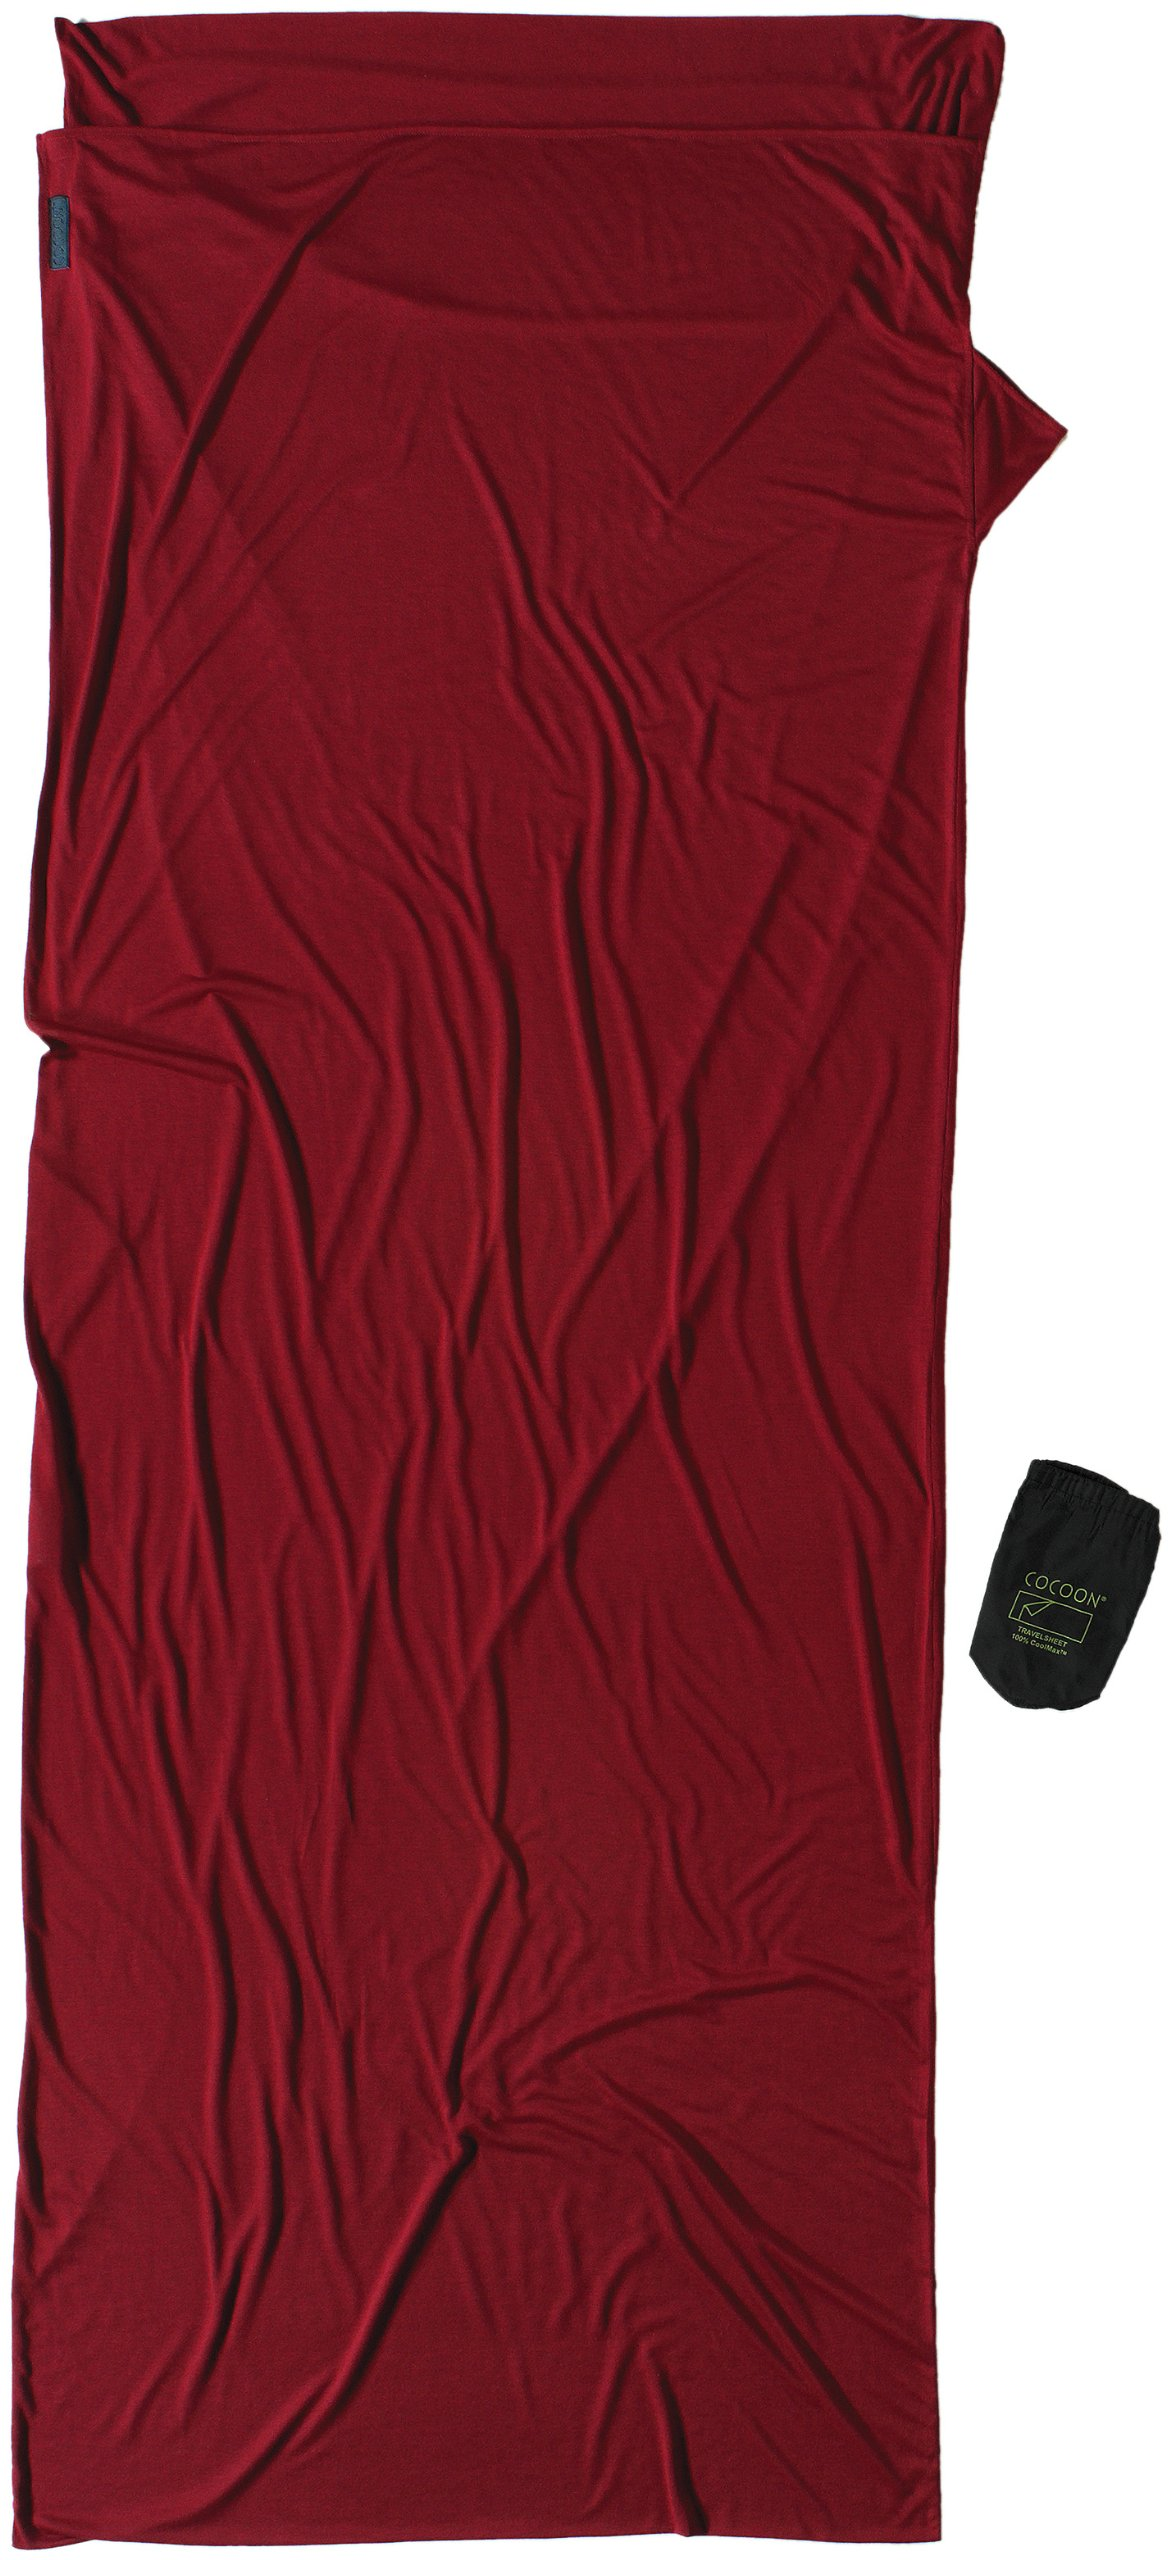 Cocoon Women's ThermaLiner-Outlast/Coolmax MummyLiner by Cocoon